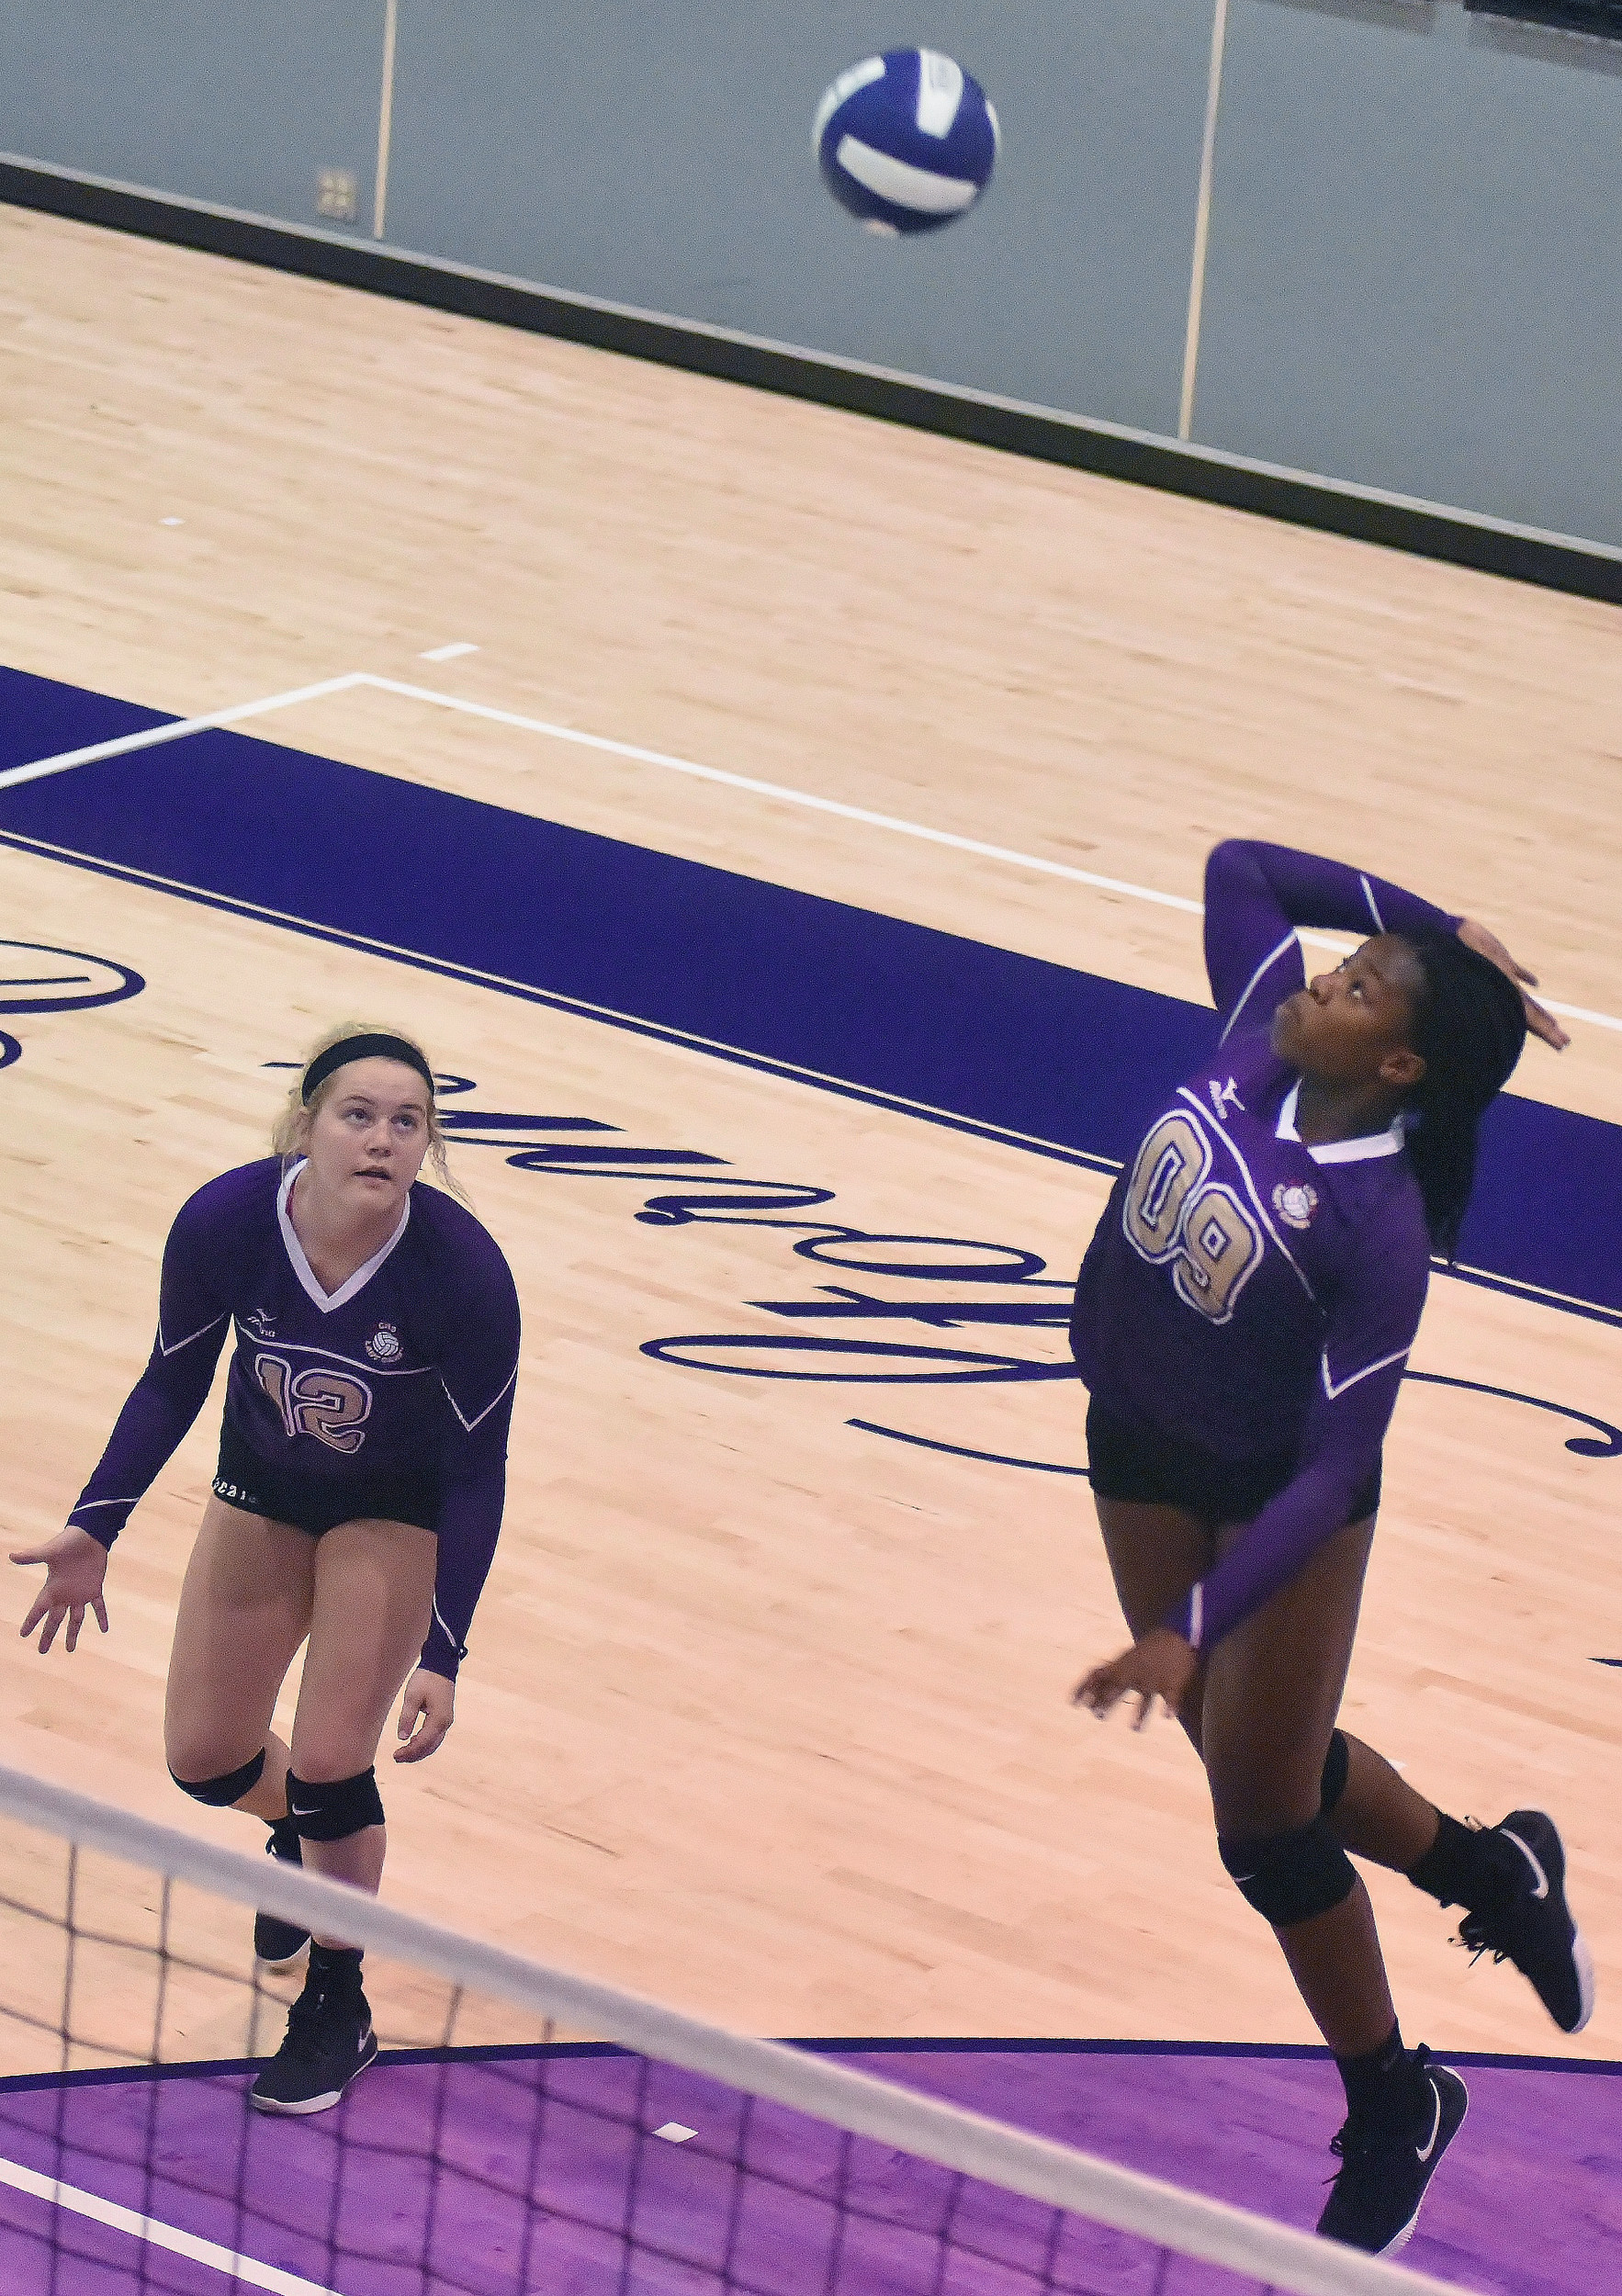 Cartersville's Nedu Evans prepares to spike the ball against Chapel Hill, as teammate Rebekah Stevens looks on, during Tuesday's tri-match at The Storm Center. The Canes defeated Chapel Hill and Troup County in straight sets.